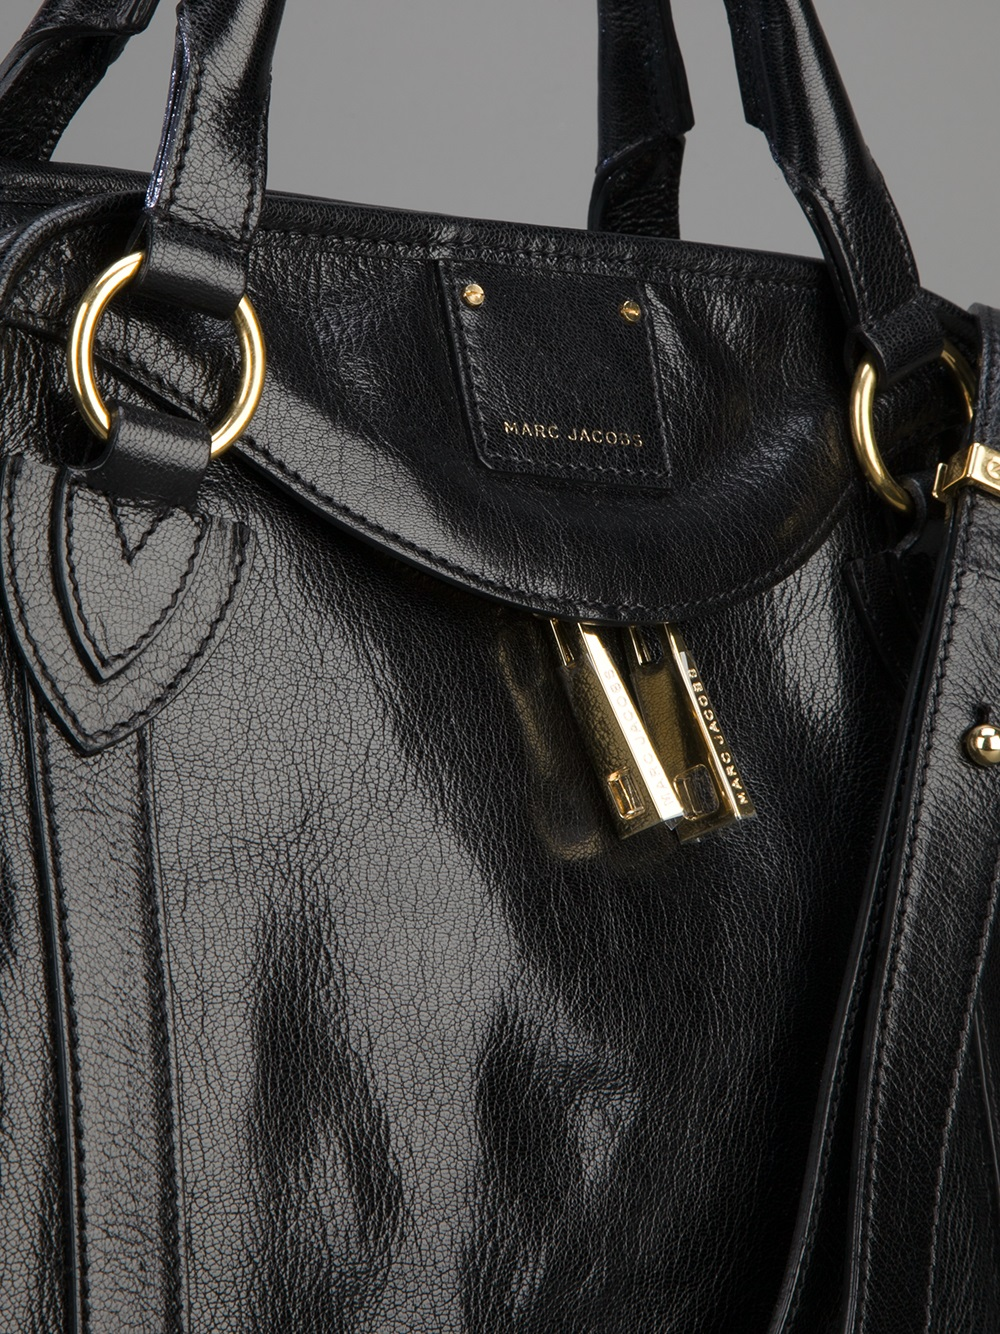 Marc Jacobs Fulton Tote in Black